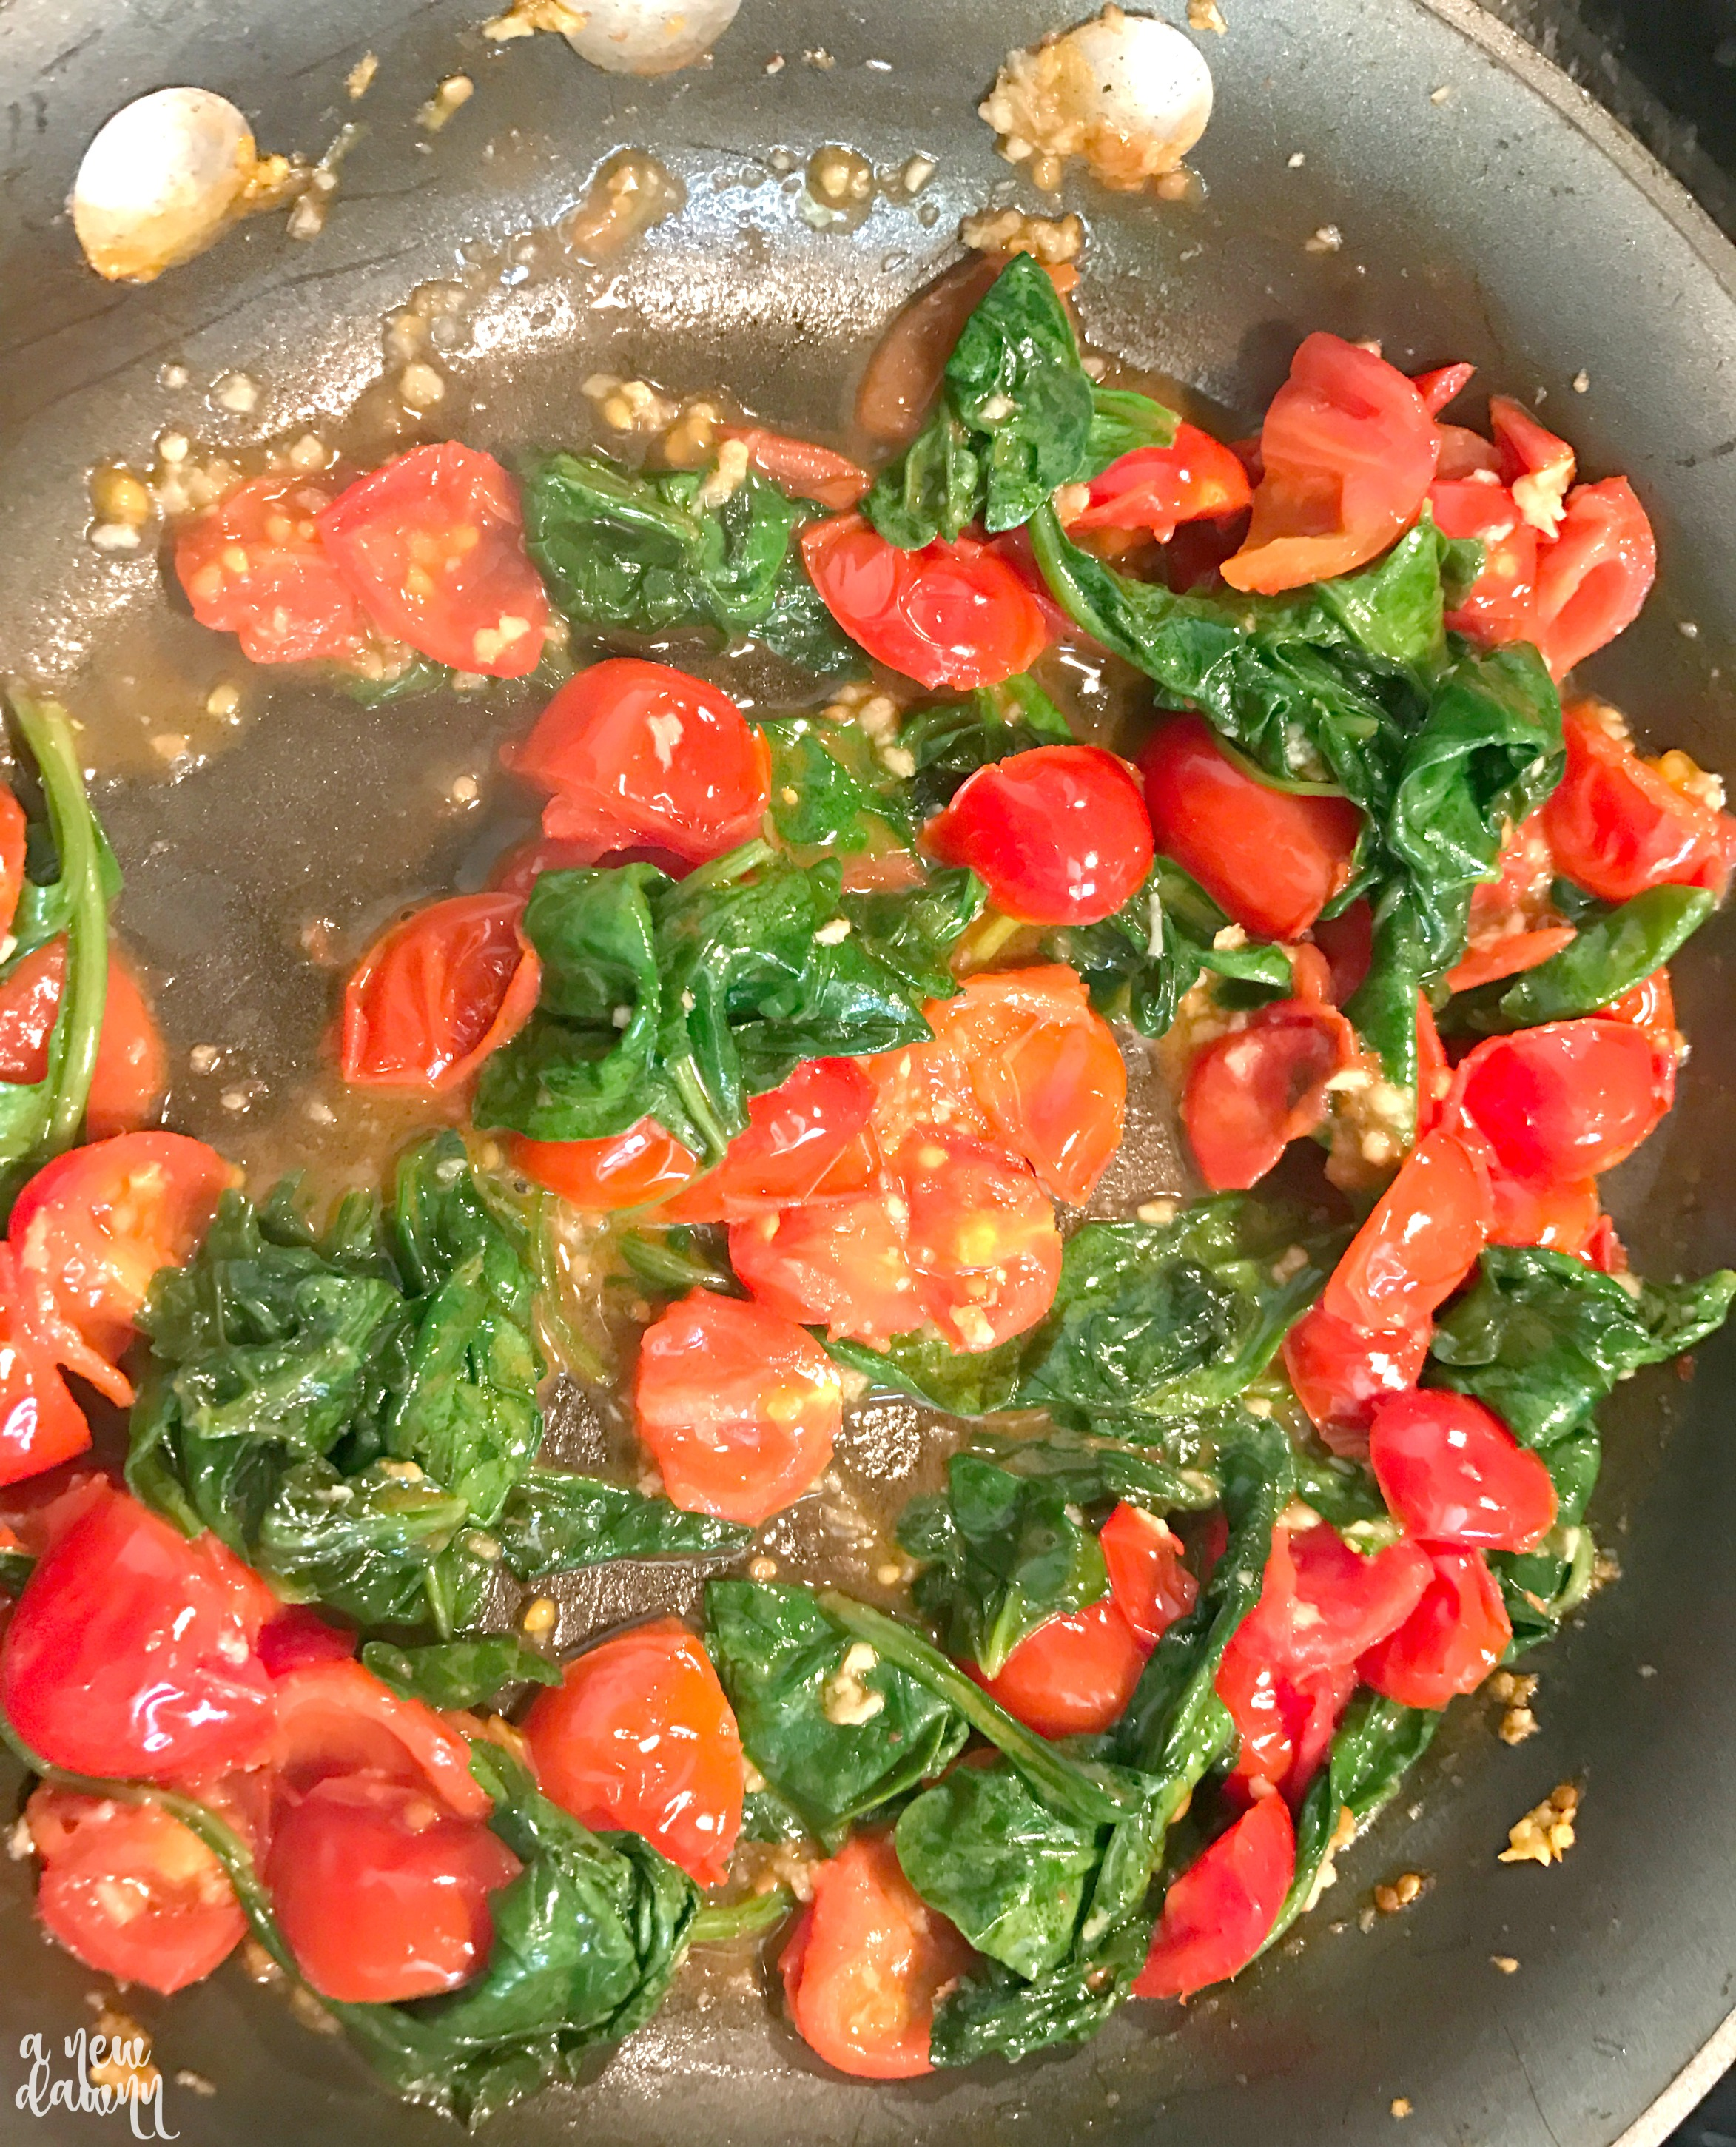 Easy Seafood Dinner - Tilapia with Spinach & Tomatoes